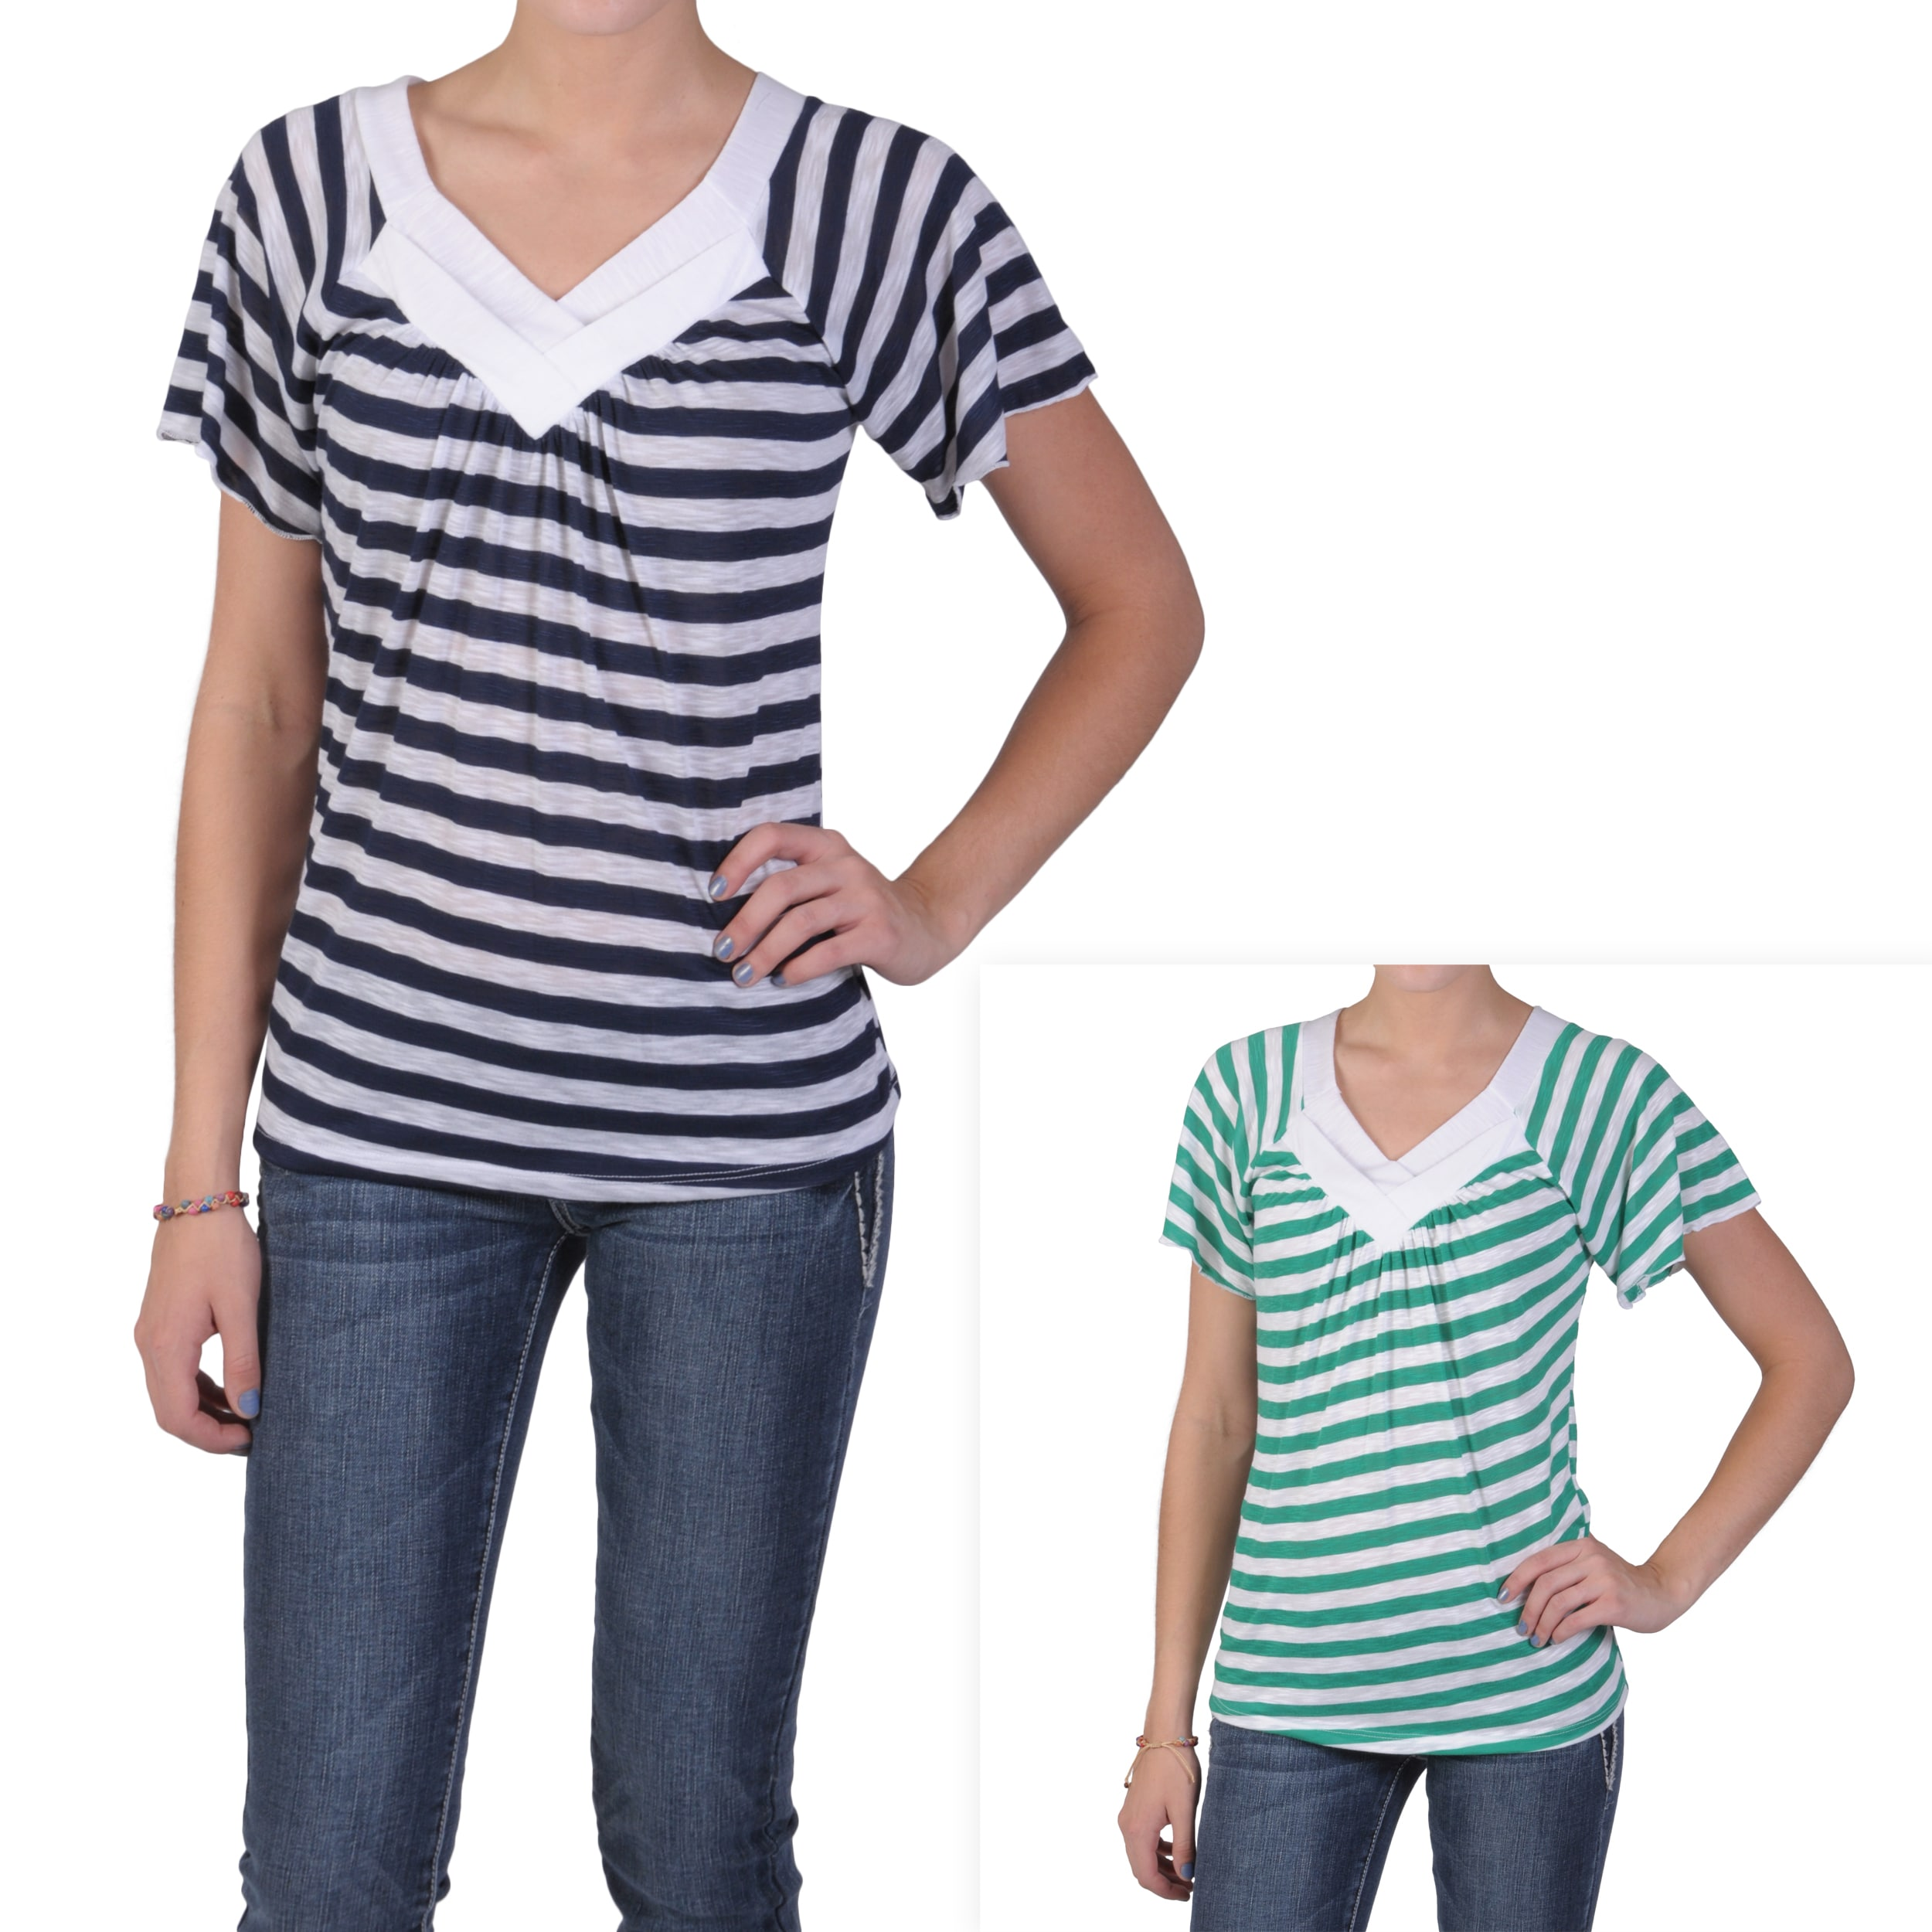 Tressa Designs Women's Contemporary Plus Striped V-neck Top